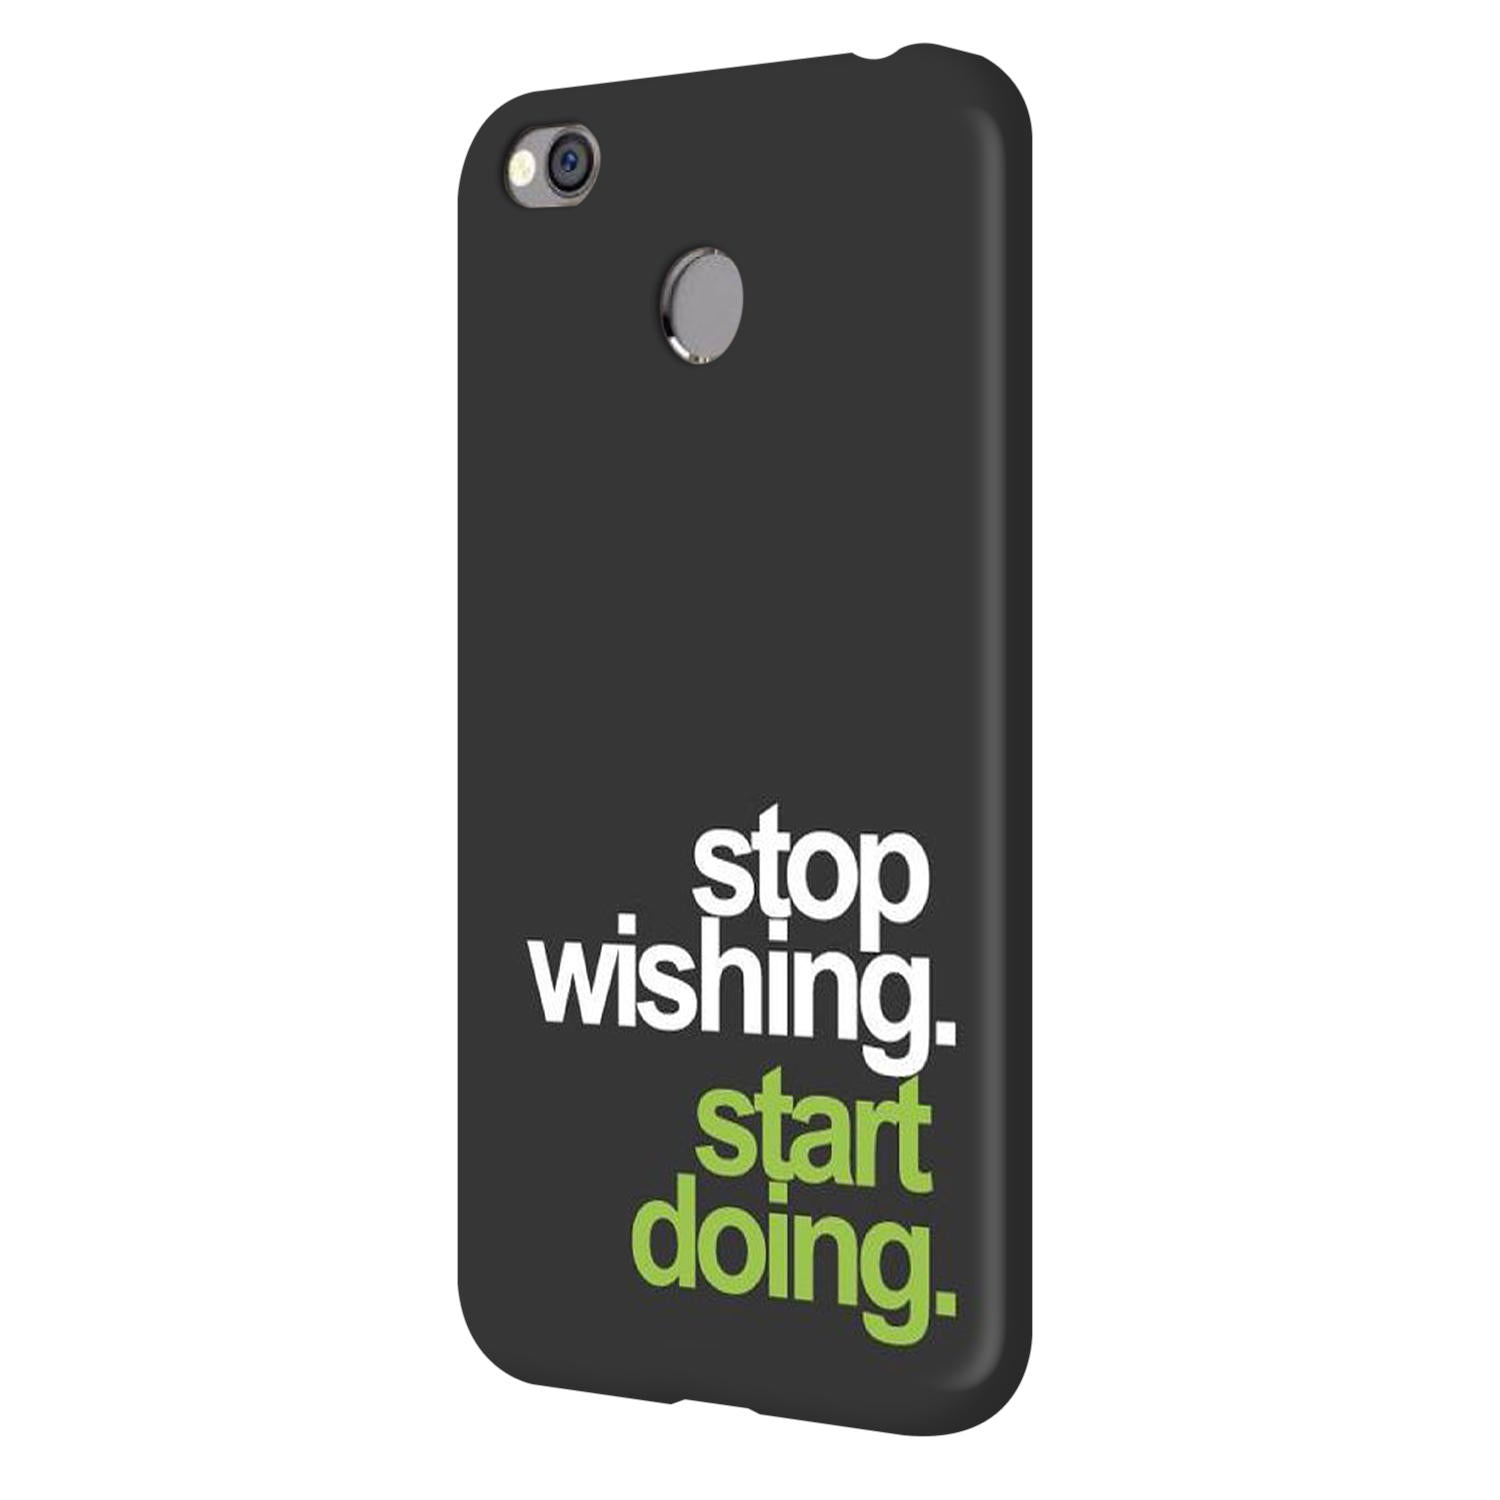 Stop Wishing Start Doing Motivational Quote Vivo V7 Plus Mobile Cover Case - MADANYU